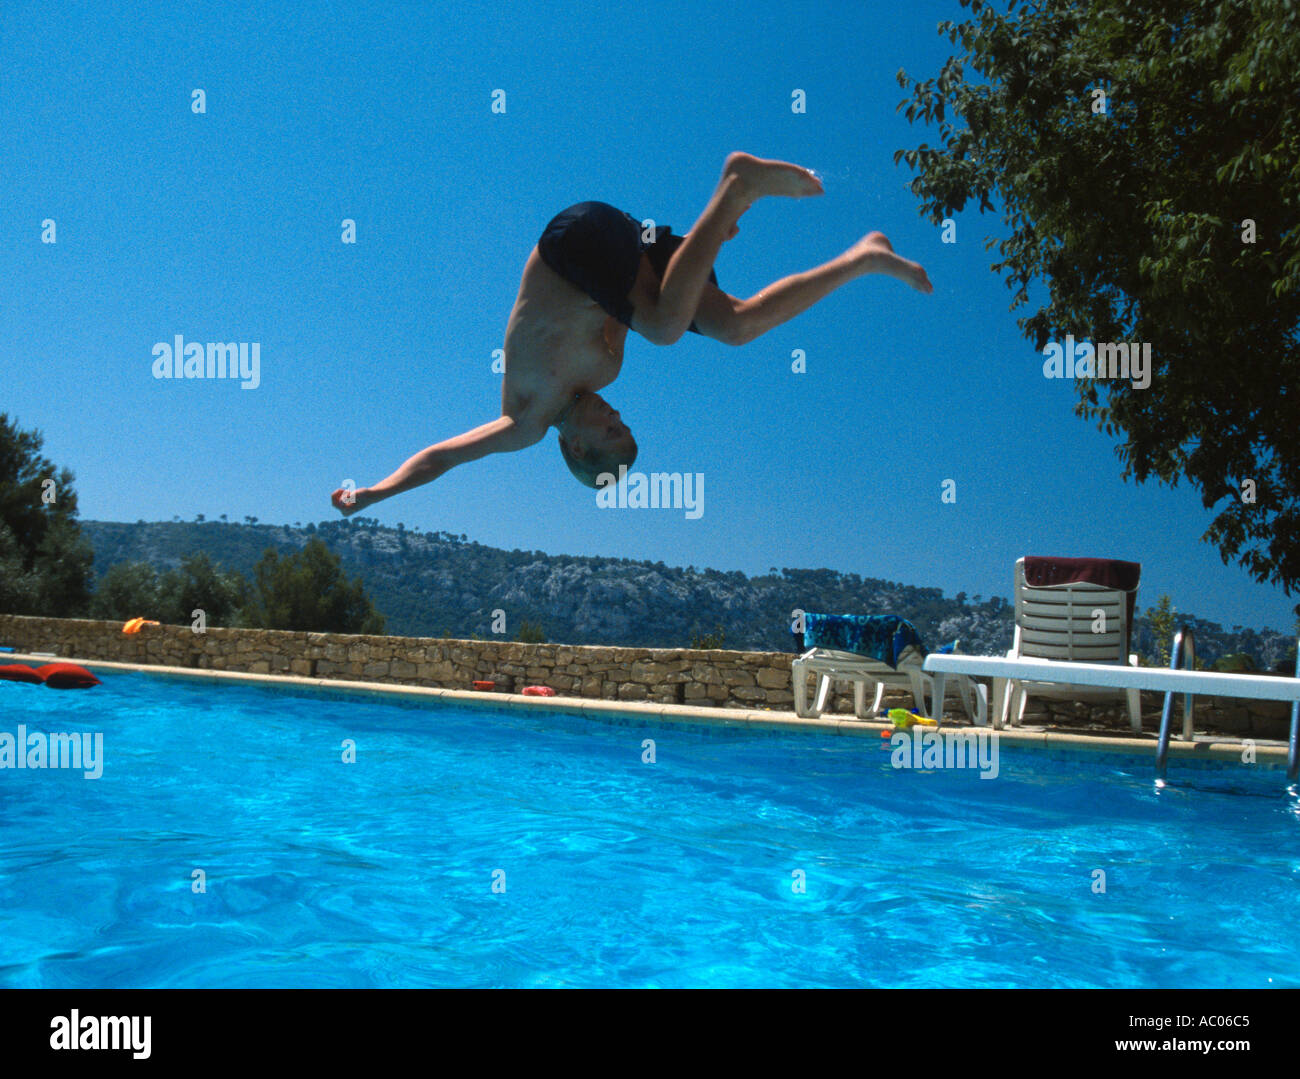 Teenage Boy Somersaulting Off Diving Board Into Swimming Pool Villa Stock Photo Royalty Free